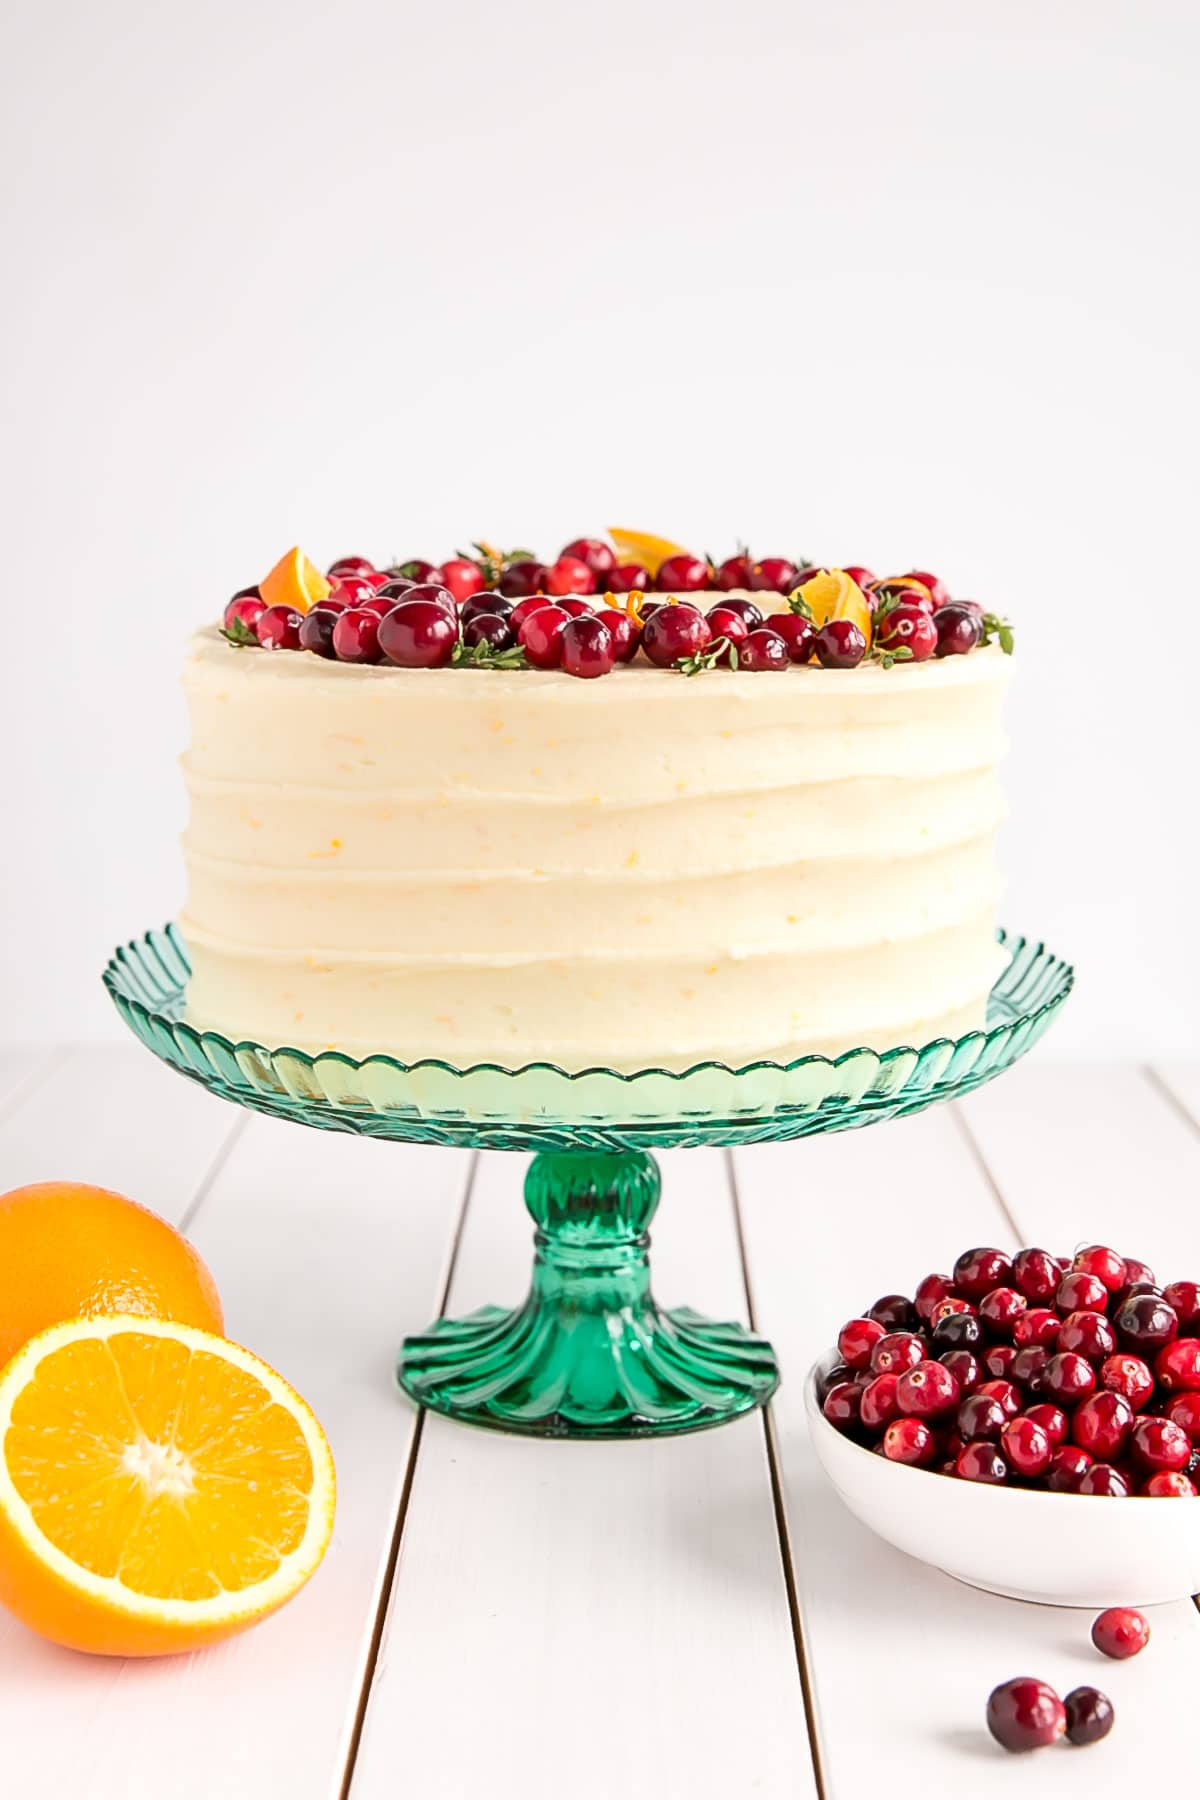 Loaded with fresh cranberries and packed with orange flavour, this Cranberry Orange Cake with cream cheese frosting is a hit for any occasion! livforcake.com